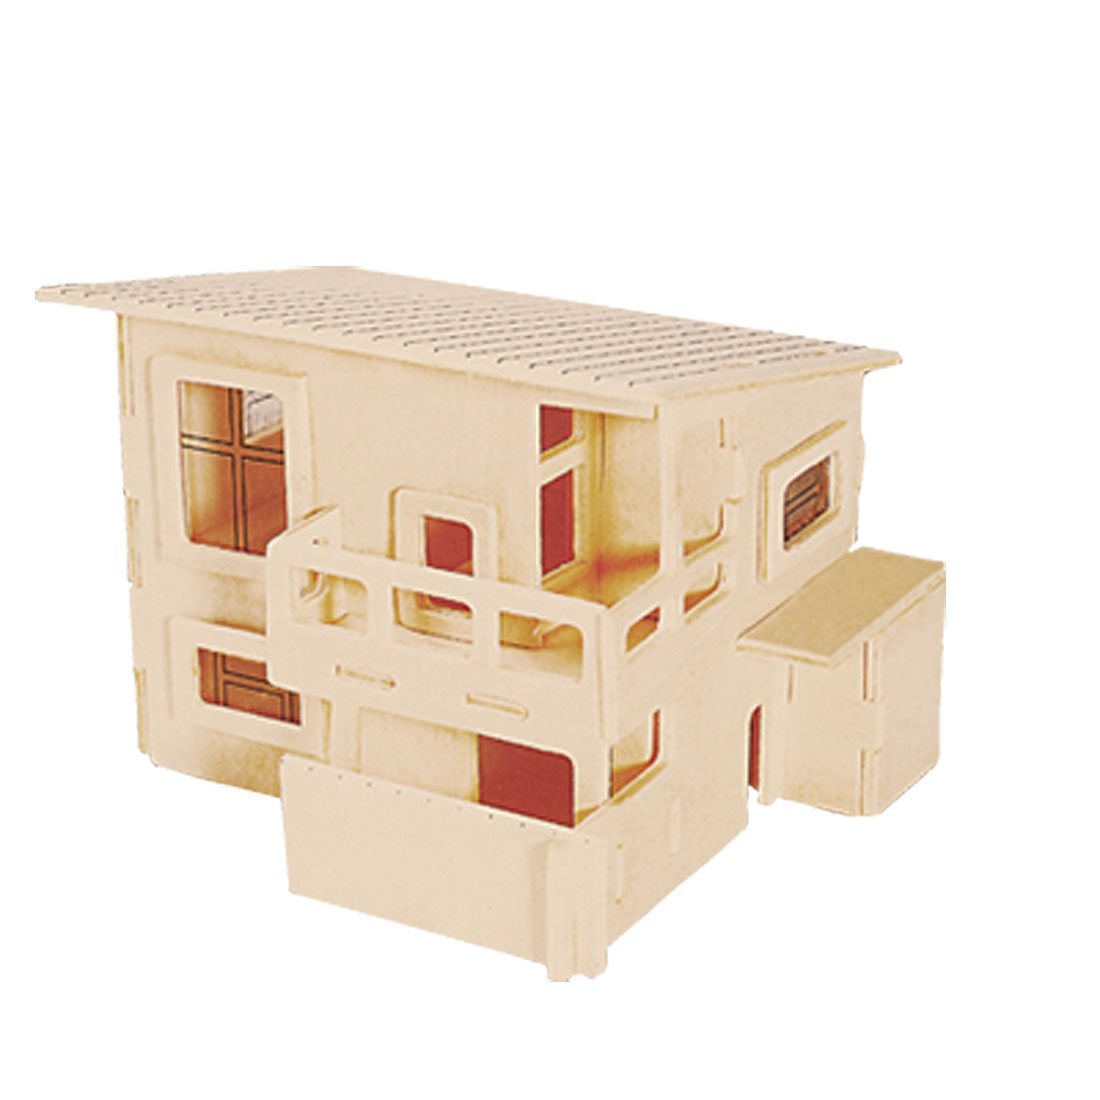 Breezy House 3D Model Woodcraft Construction Kit Puzzle Toy